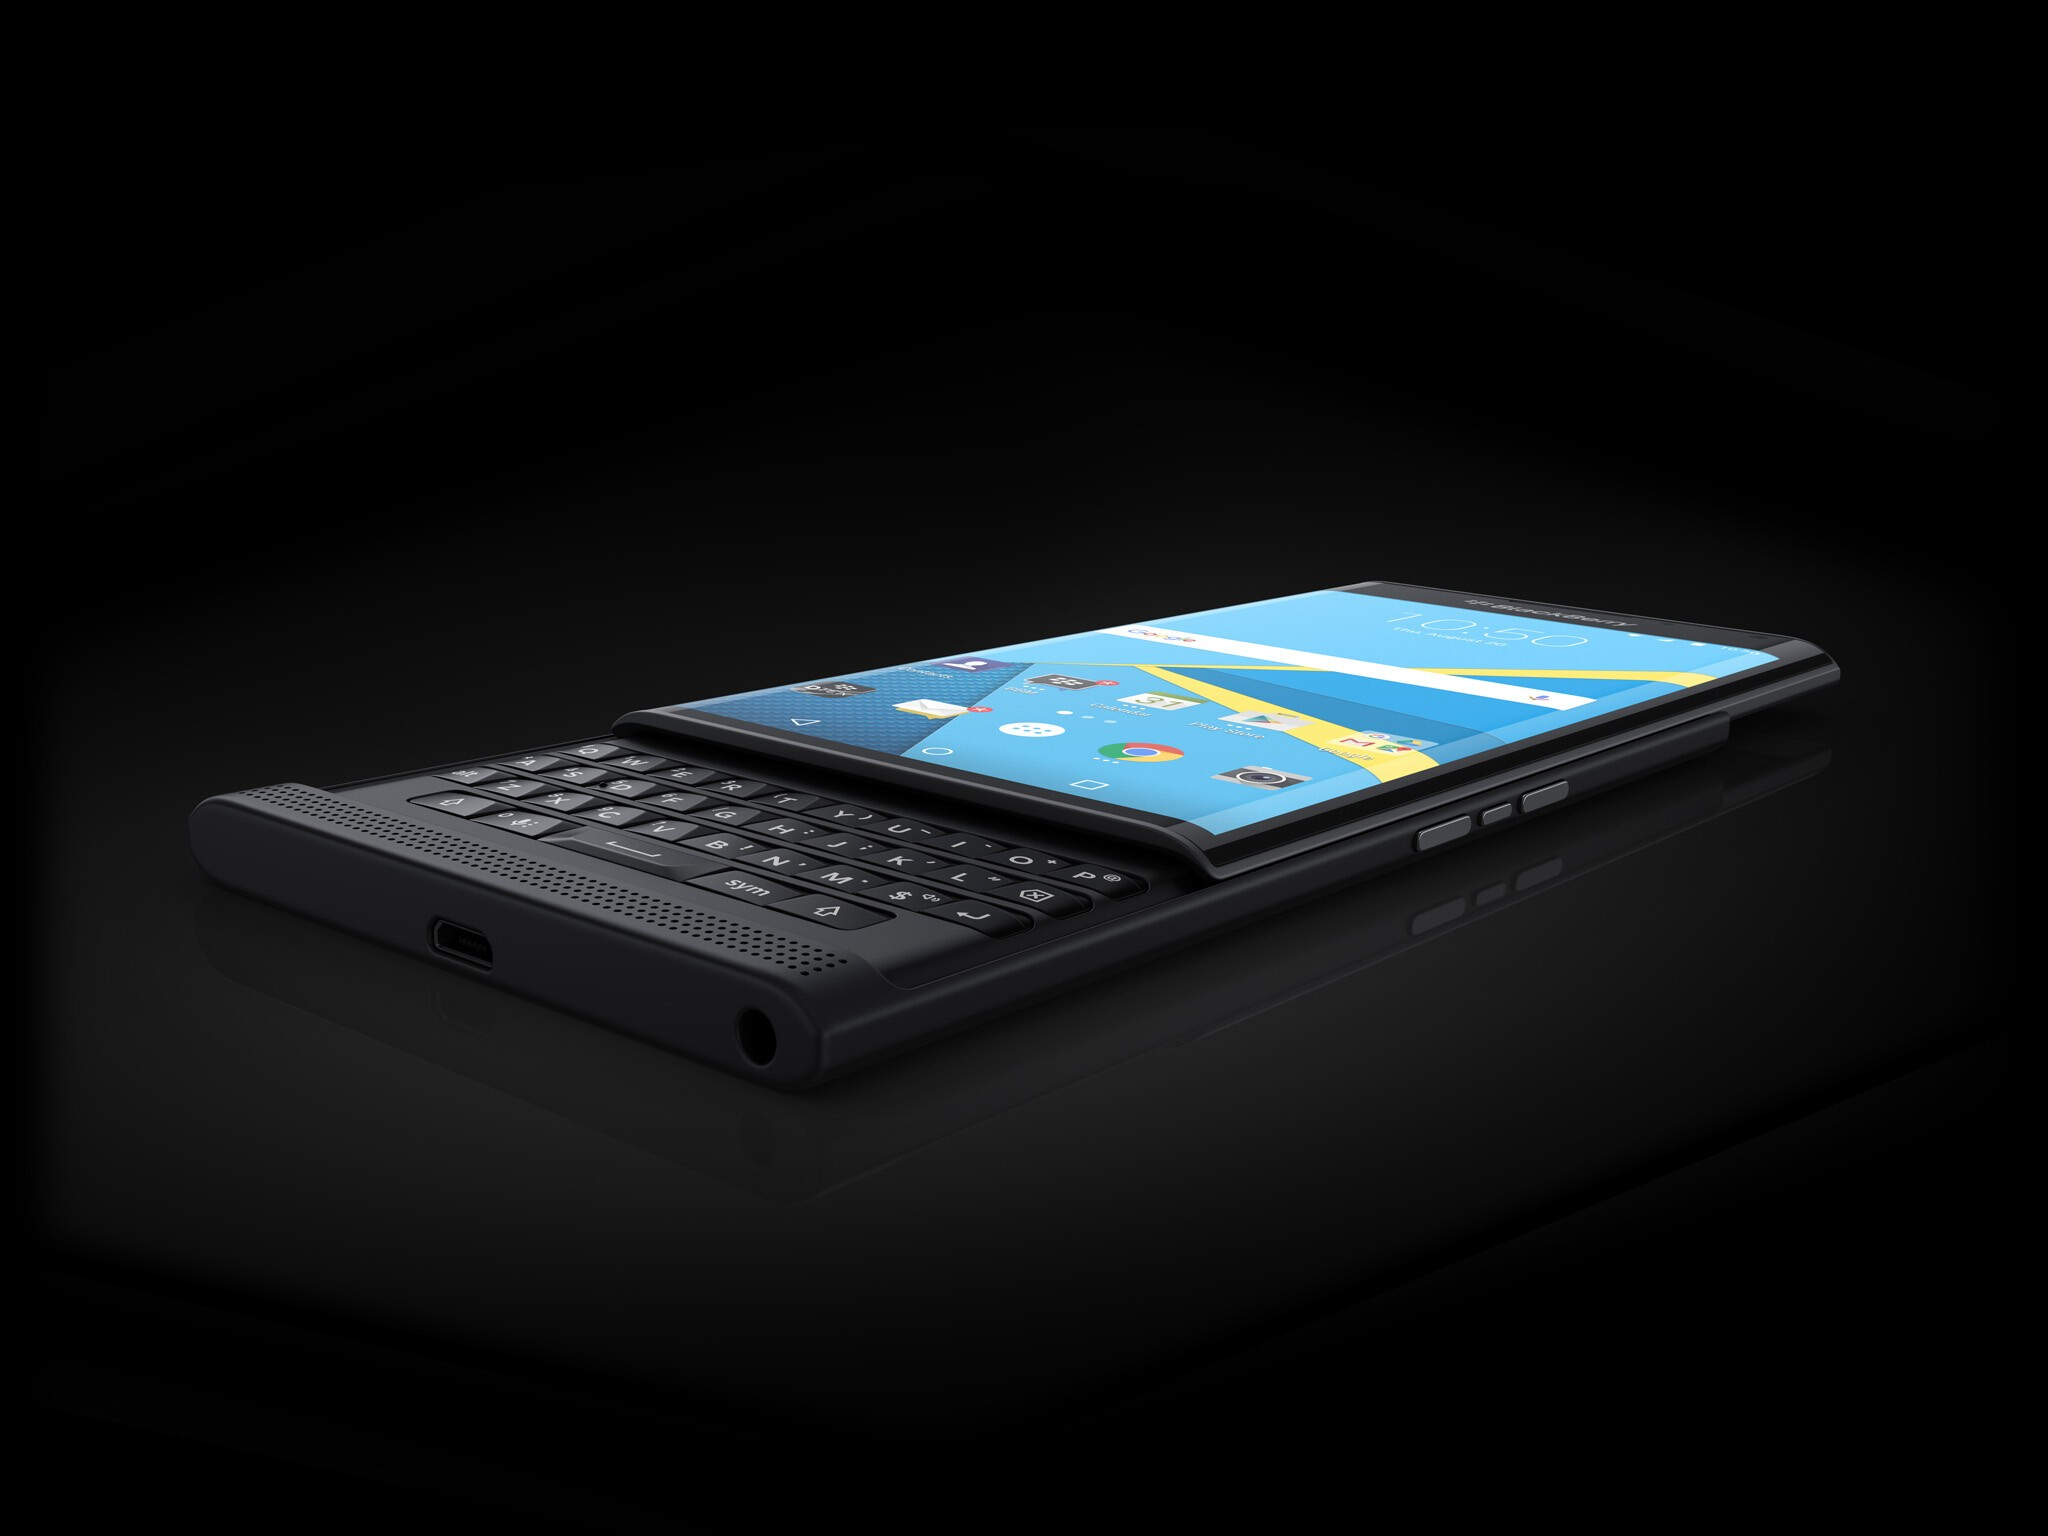 http://crackberry.com/everything-we-know-about-blackberrys-upcoming-android-powered-slider